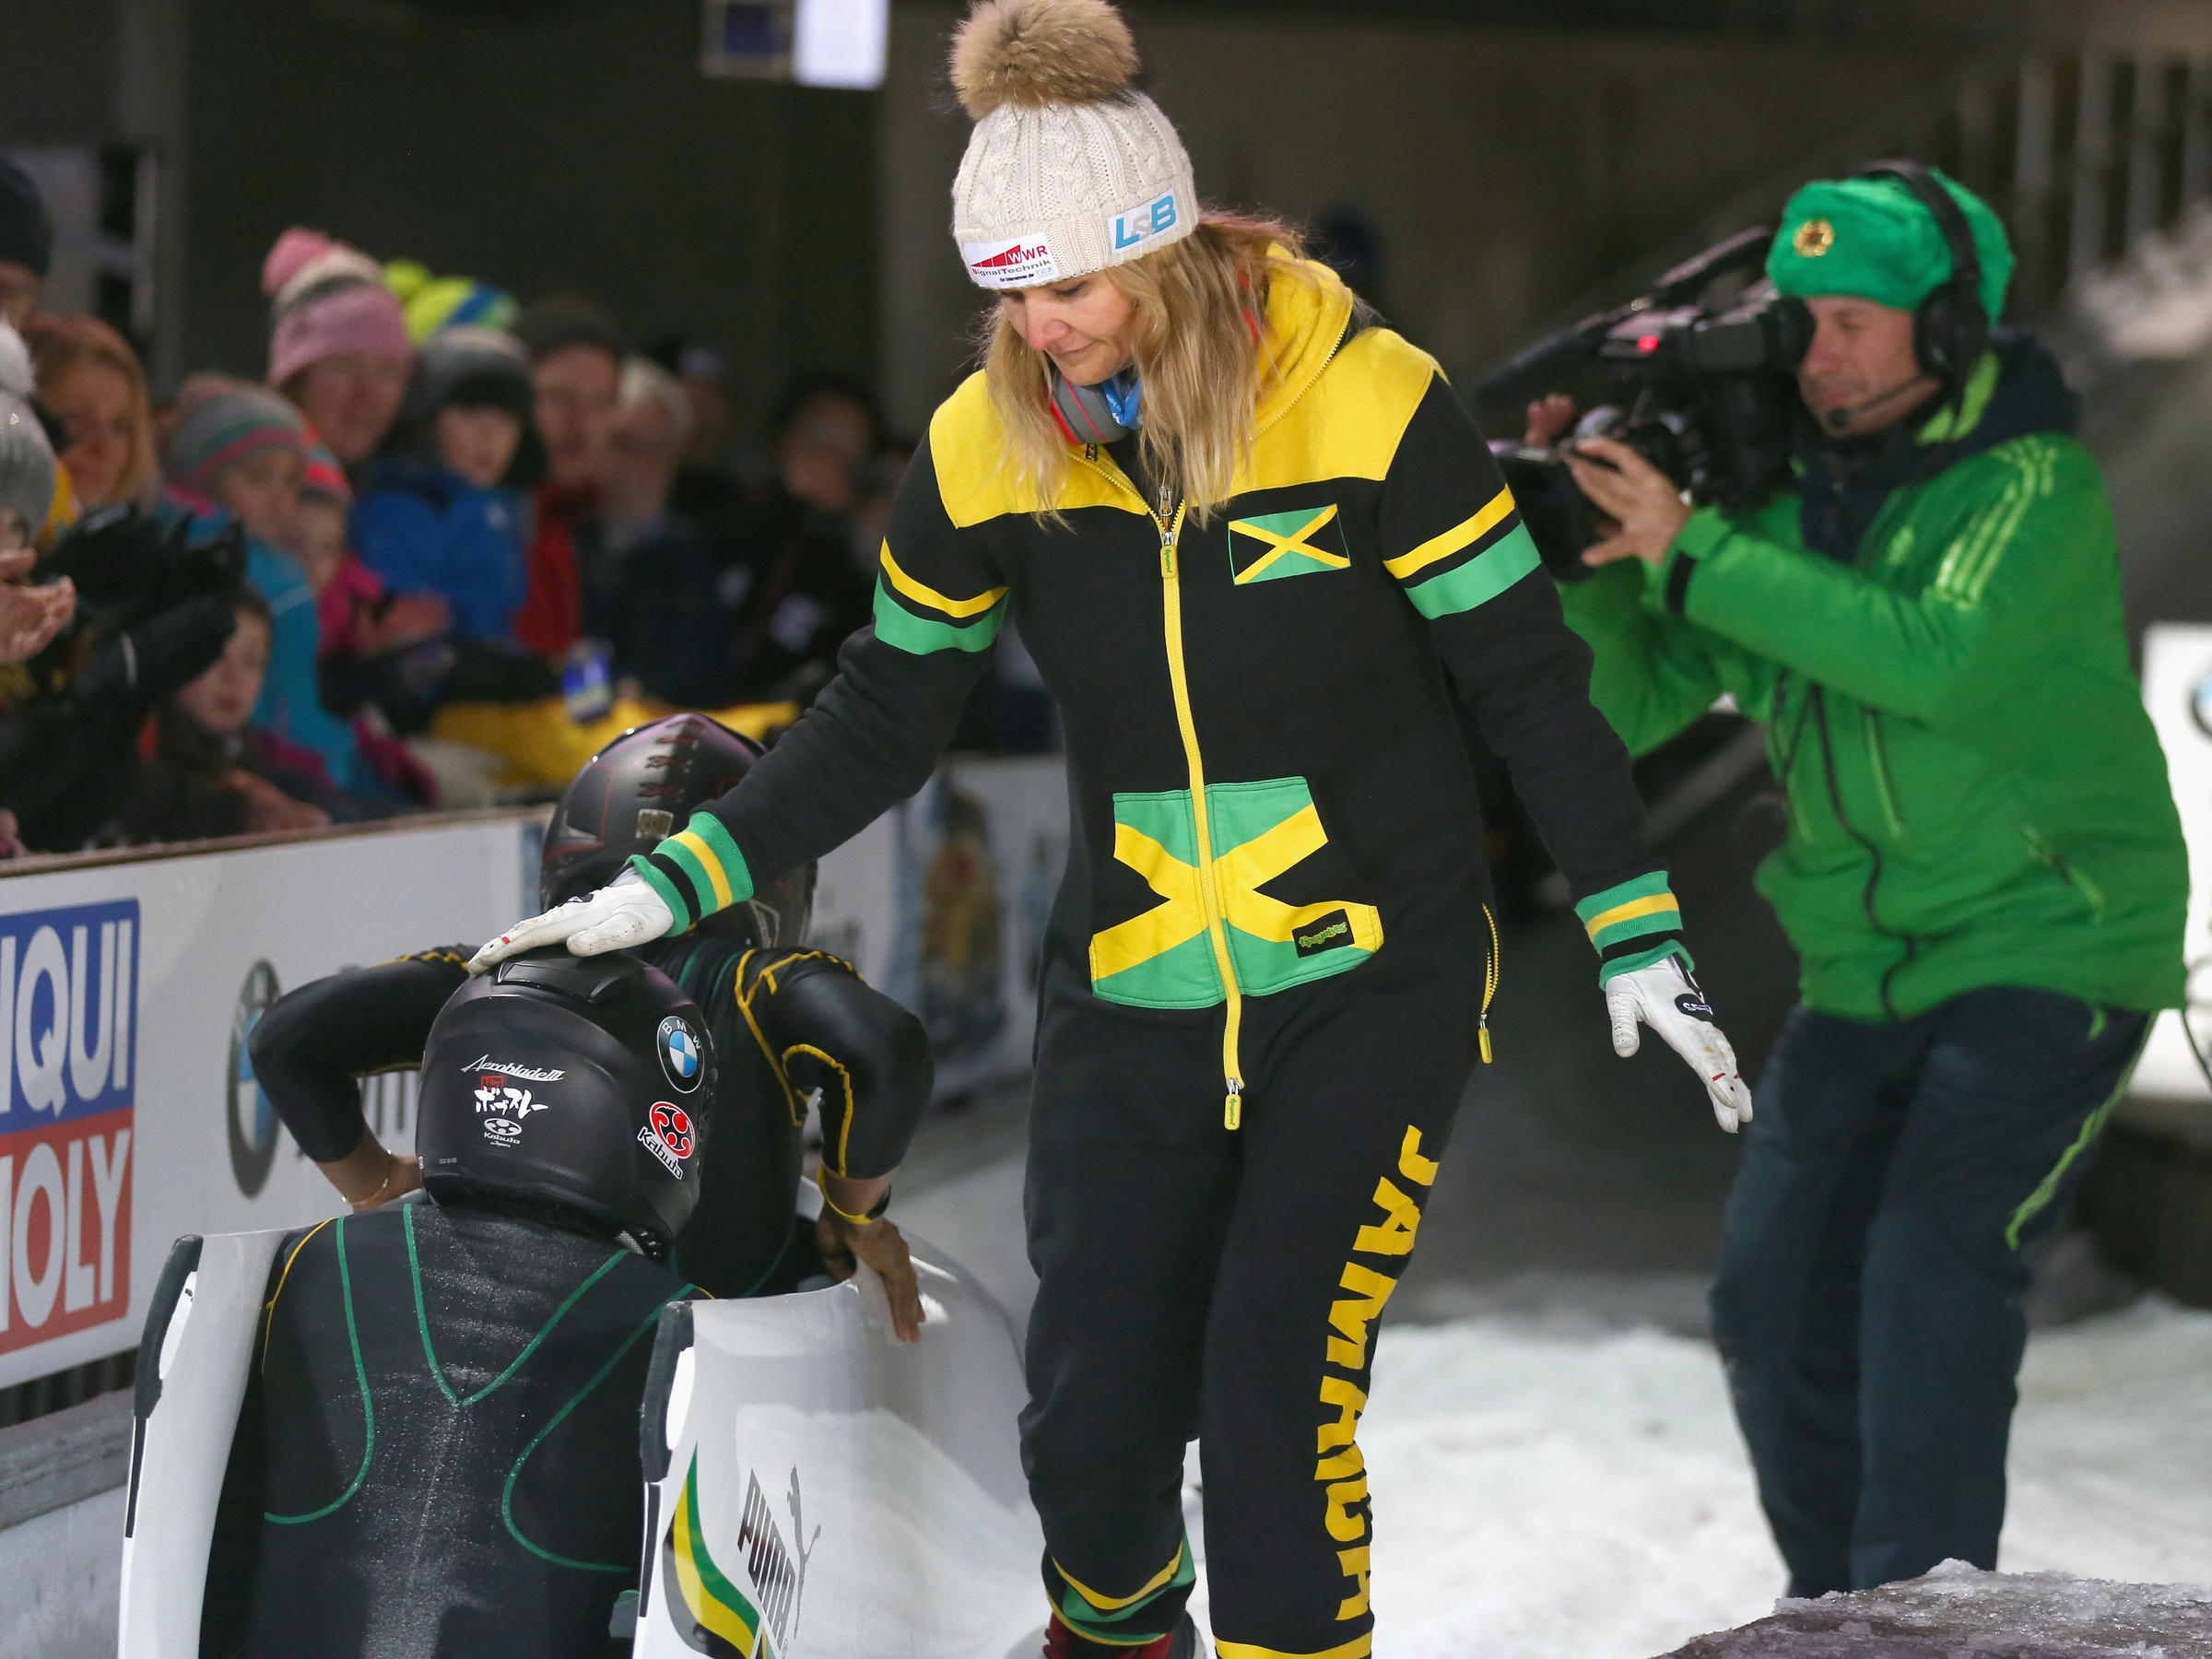 Jamaica women's bobsleigh team in disarray